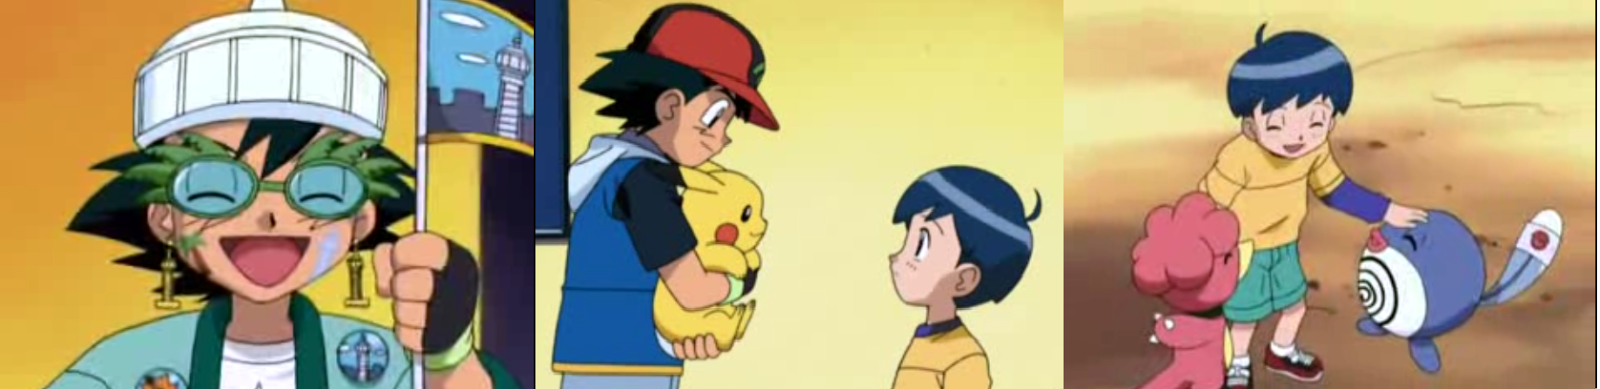 Pokémon -  Capítulo 15  - Temporada 6 - Audio Latino